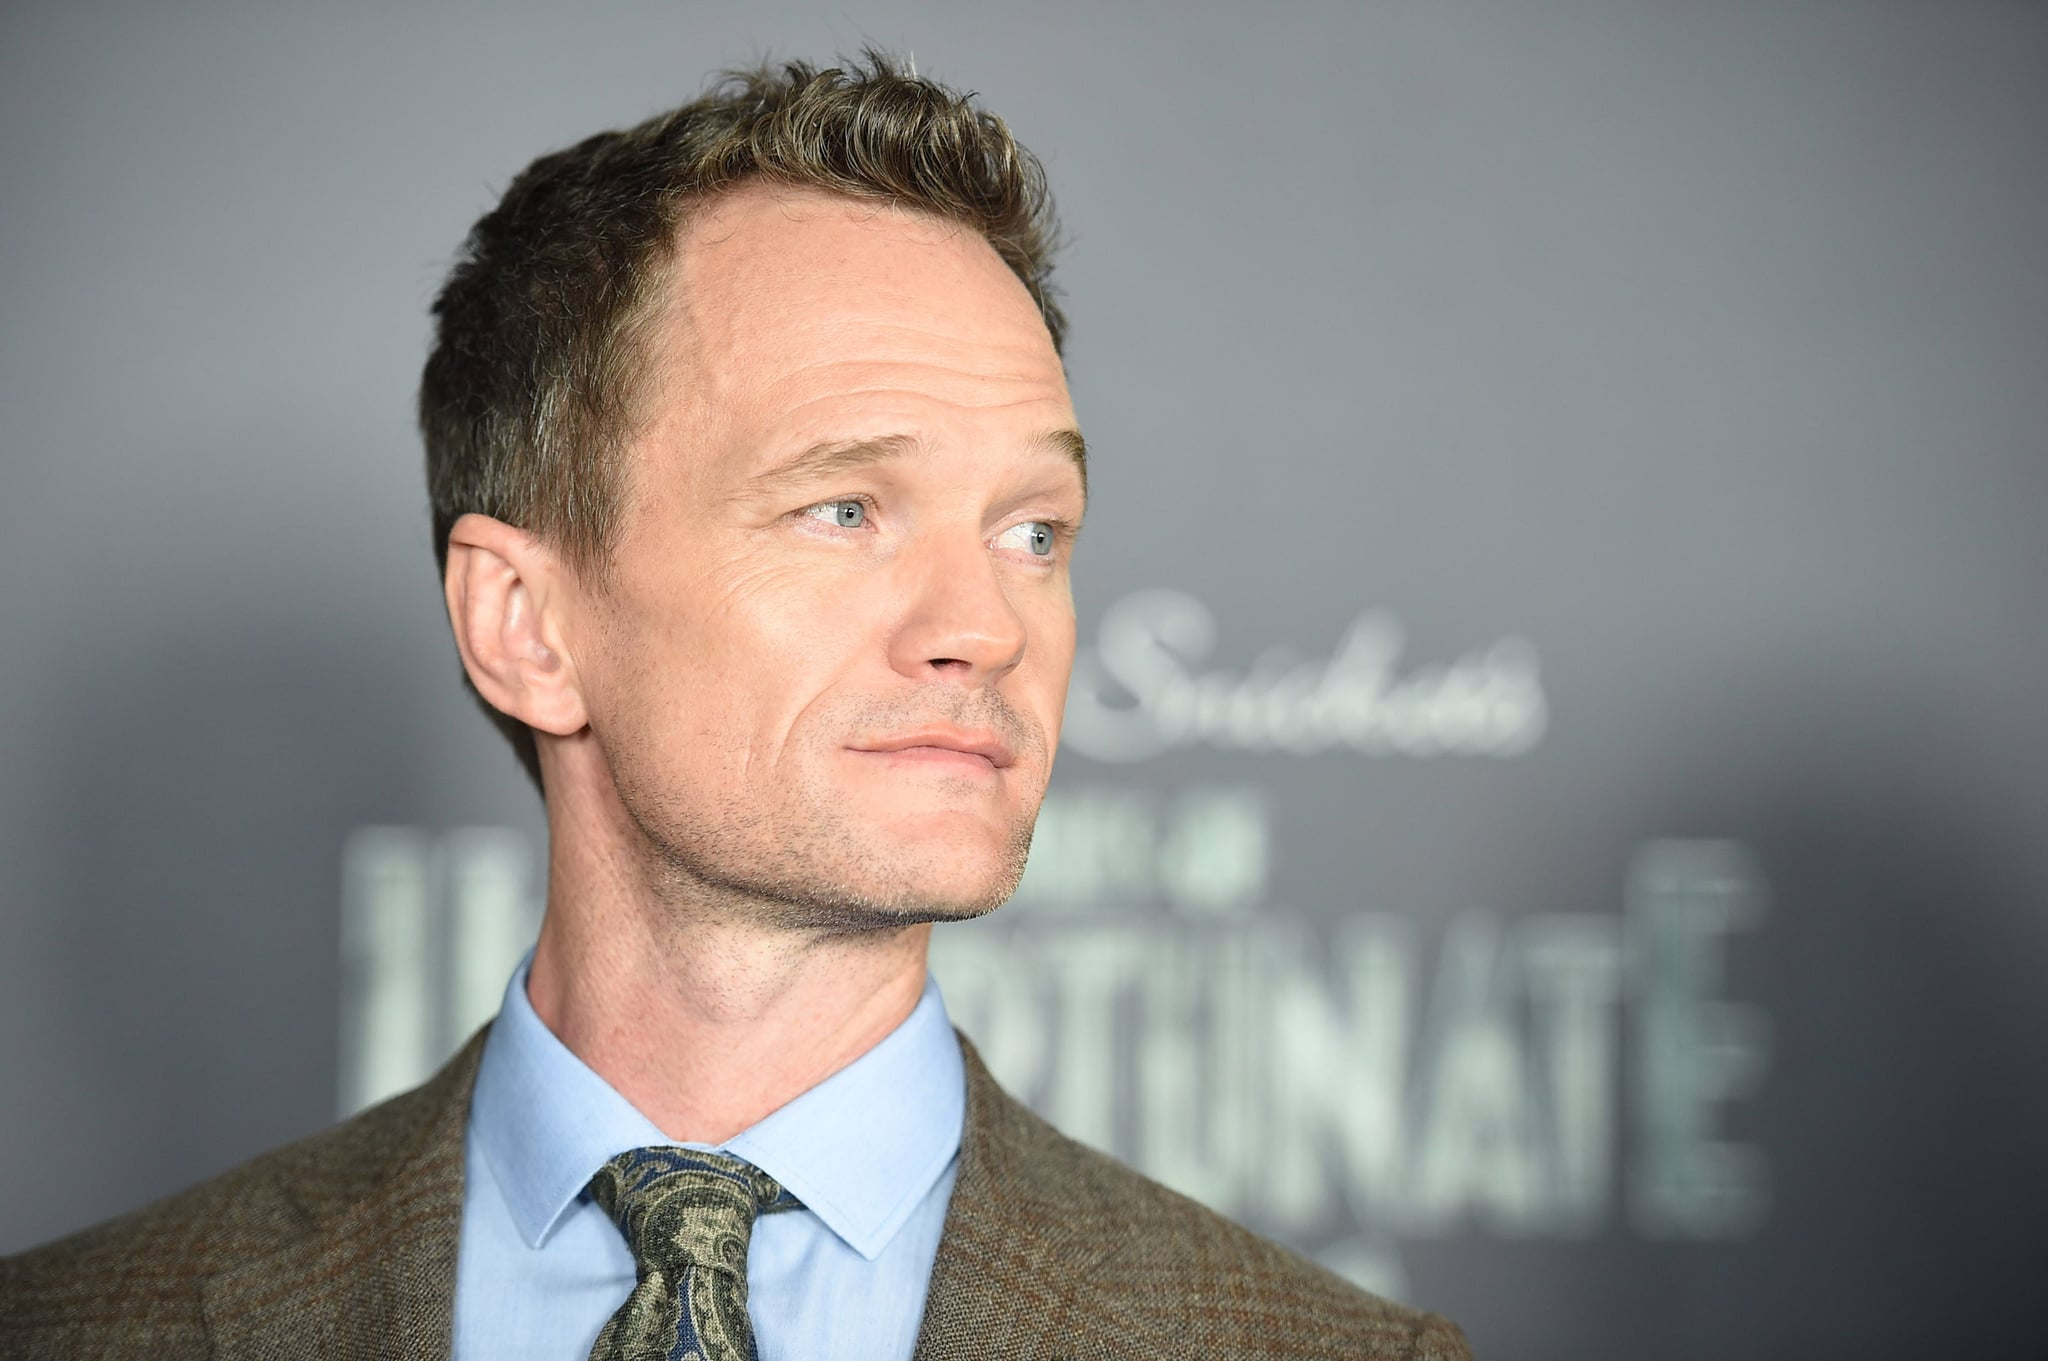 Neil Patrick Harris calls out James Woods over homophobic tweet